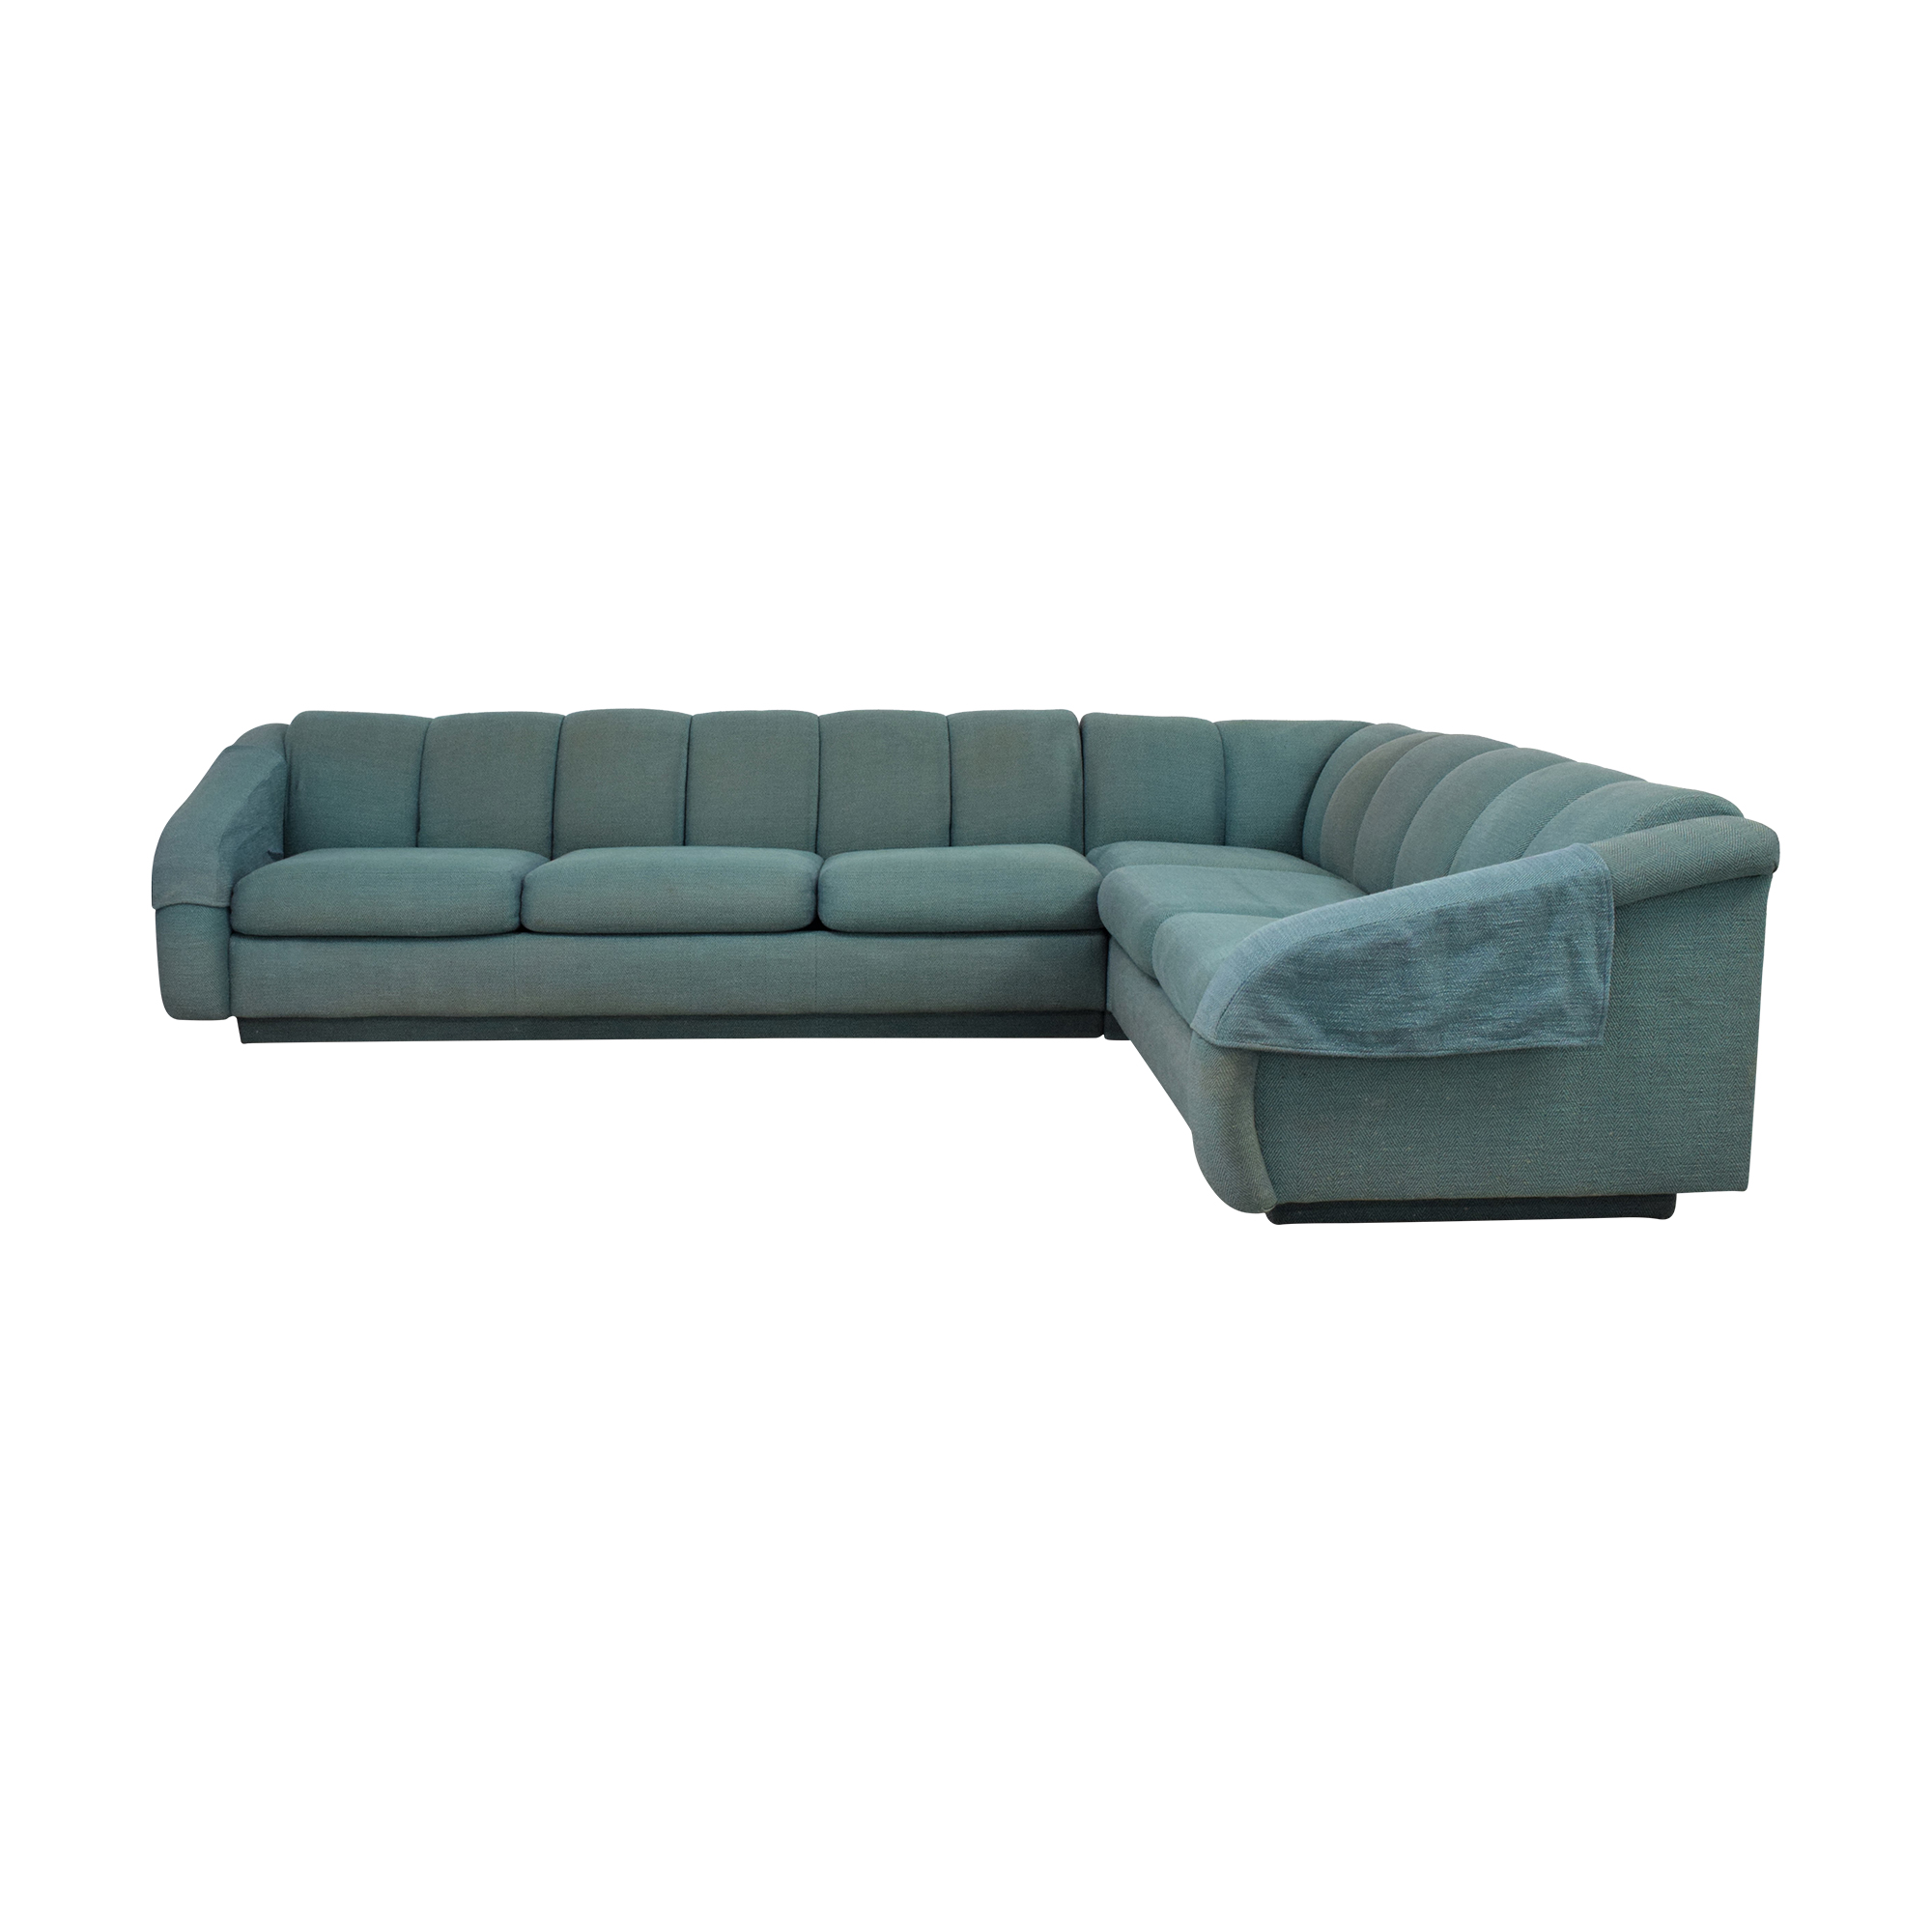 Directional Furniture Directional Furniture Sectional Sofa dimensions